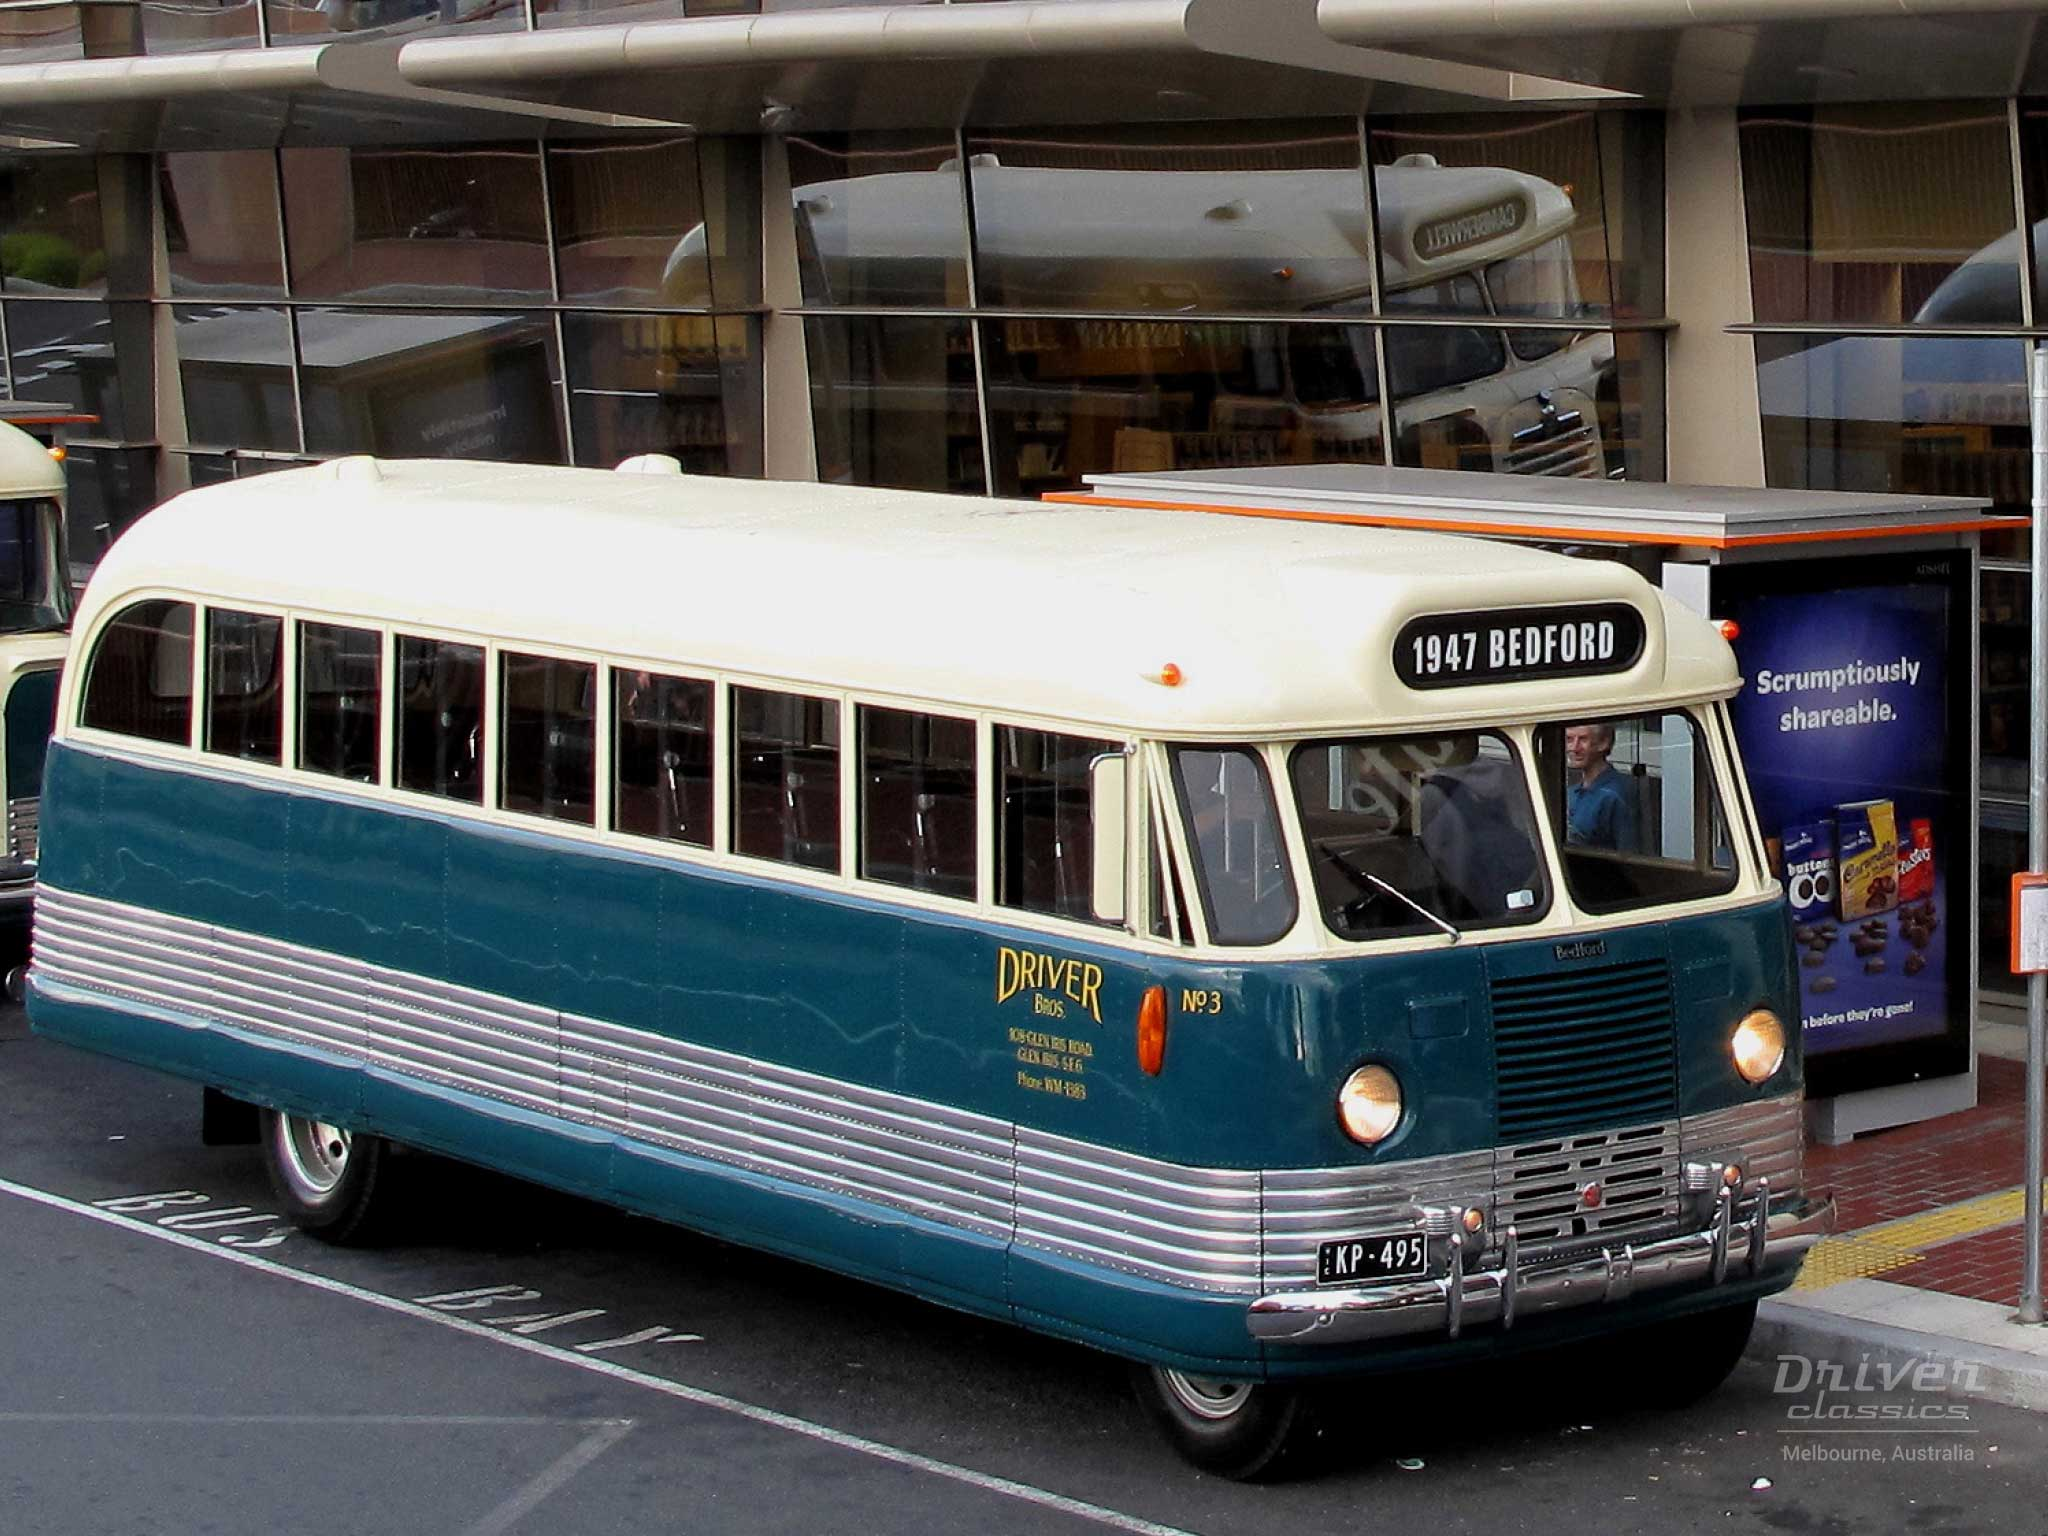 1947 Bedford OB bus from above, Chadstone VIC, Photo taken June 2013